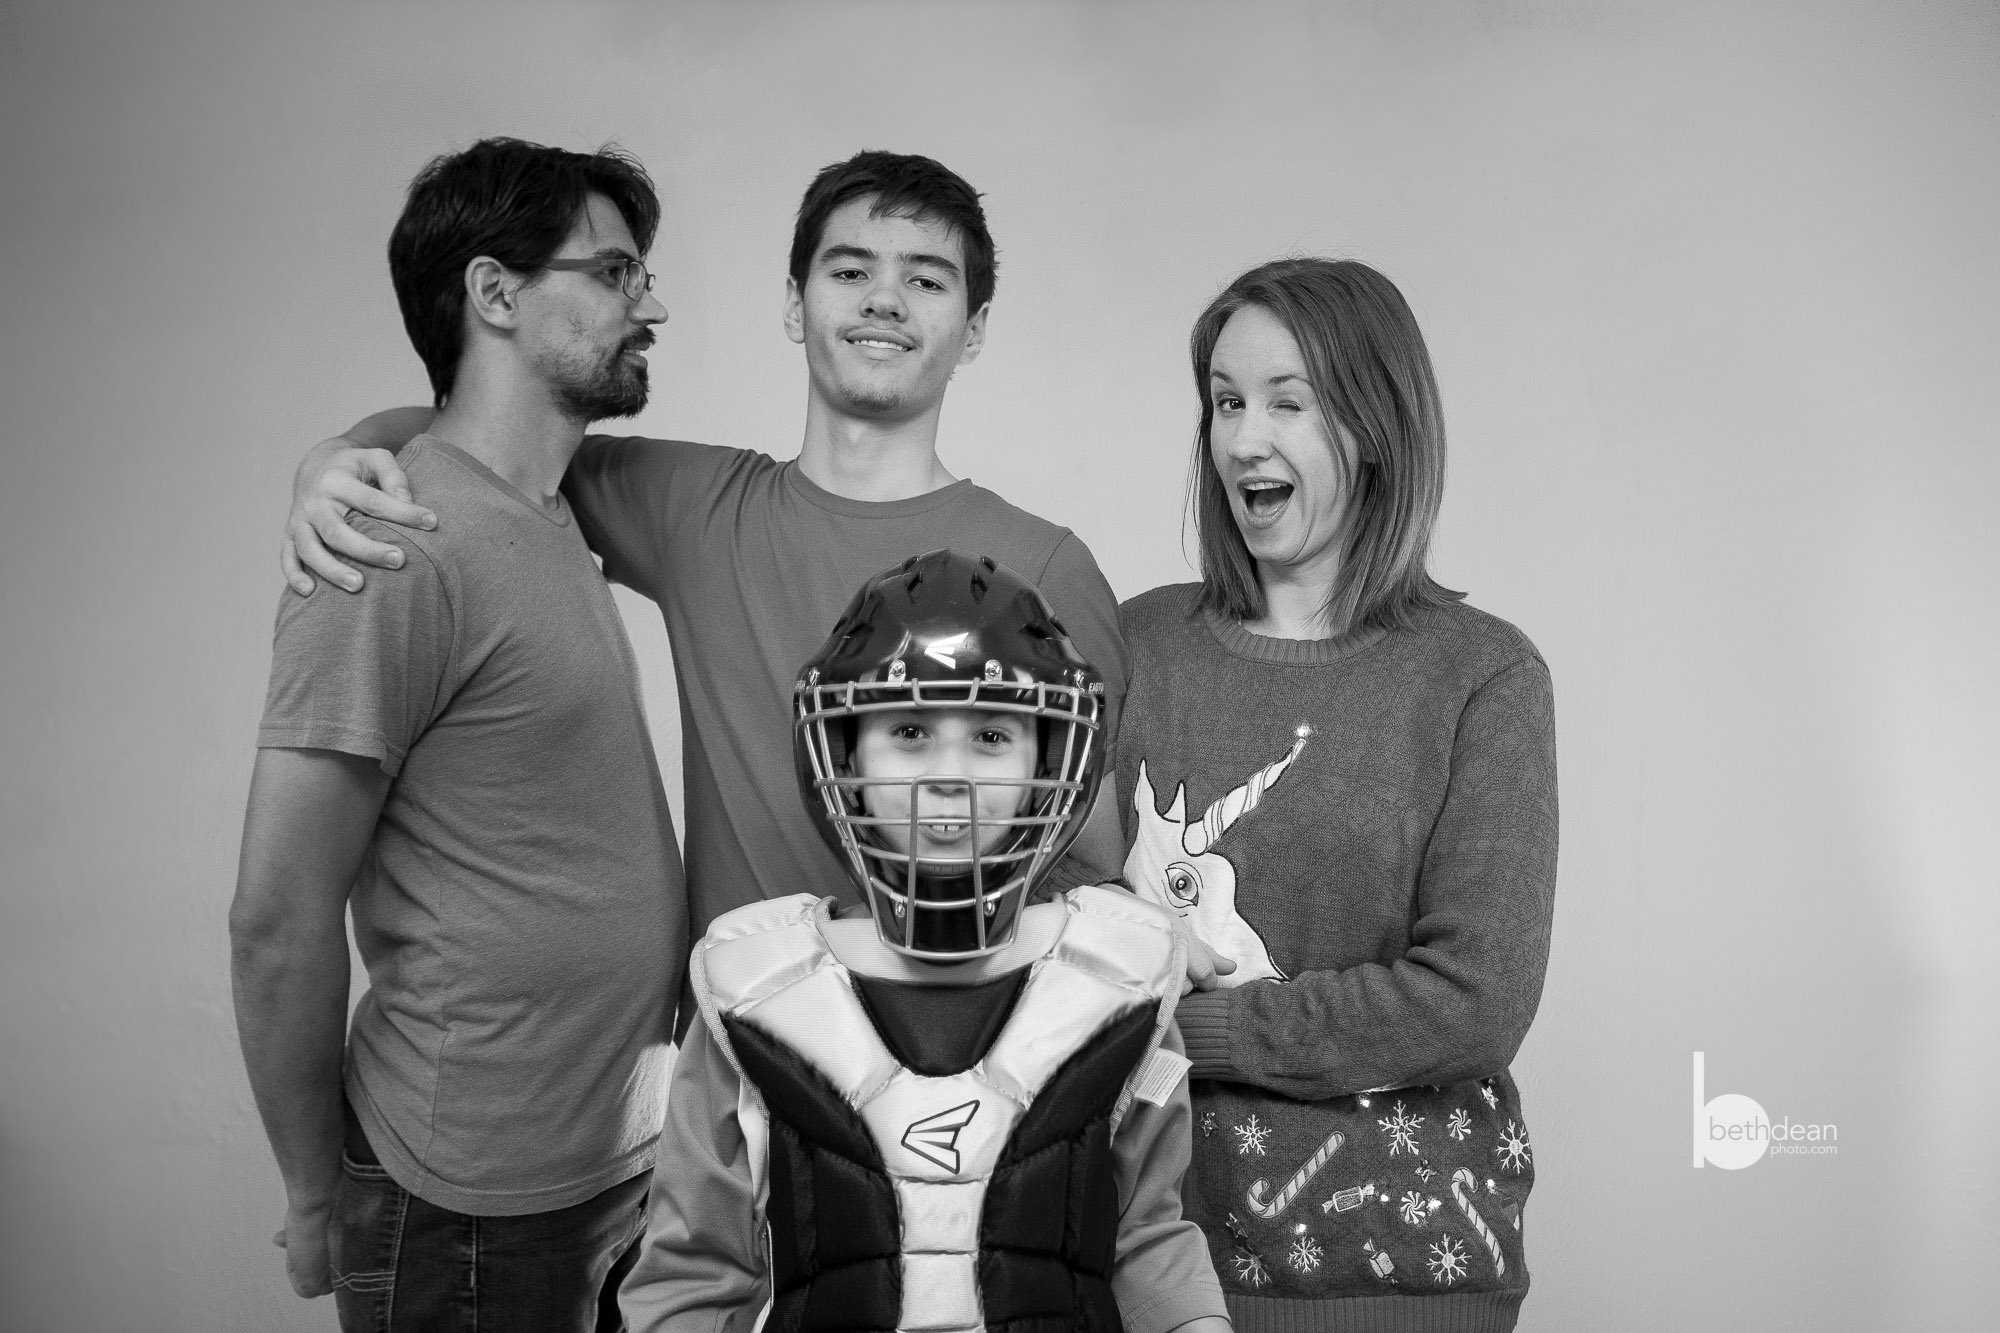 Beth Dean Photography - Happy Holidays from my family